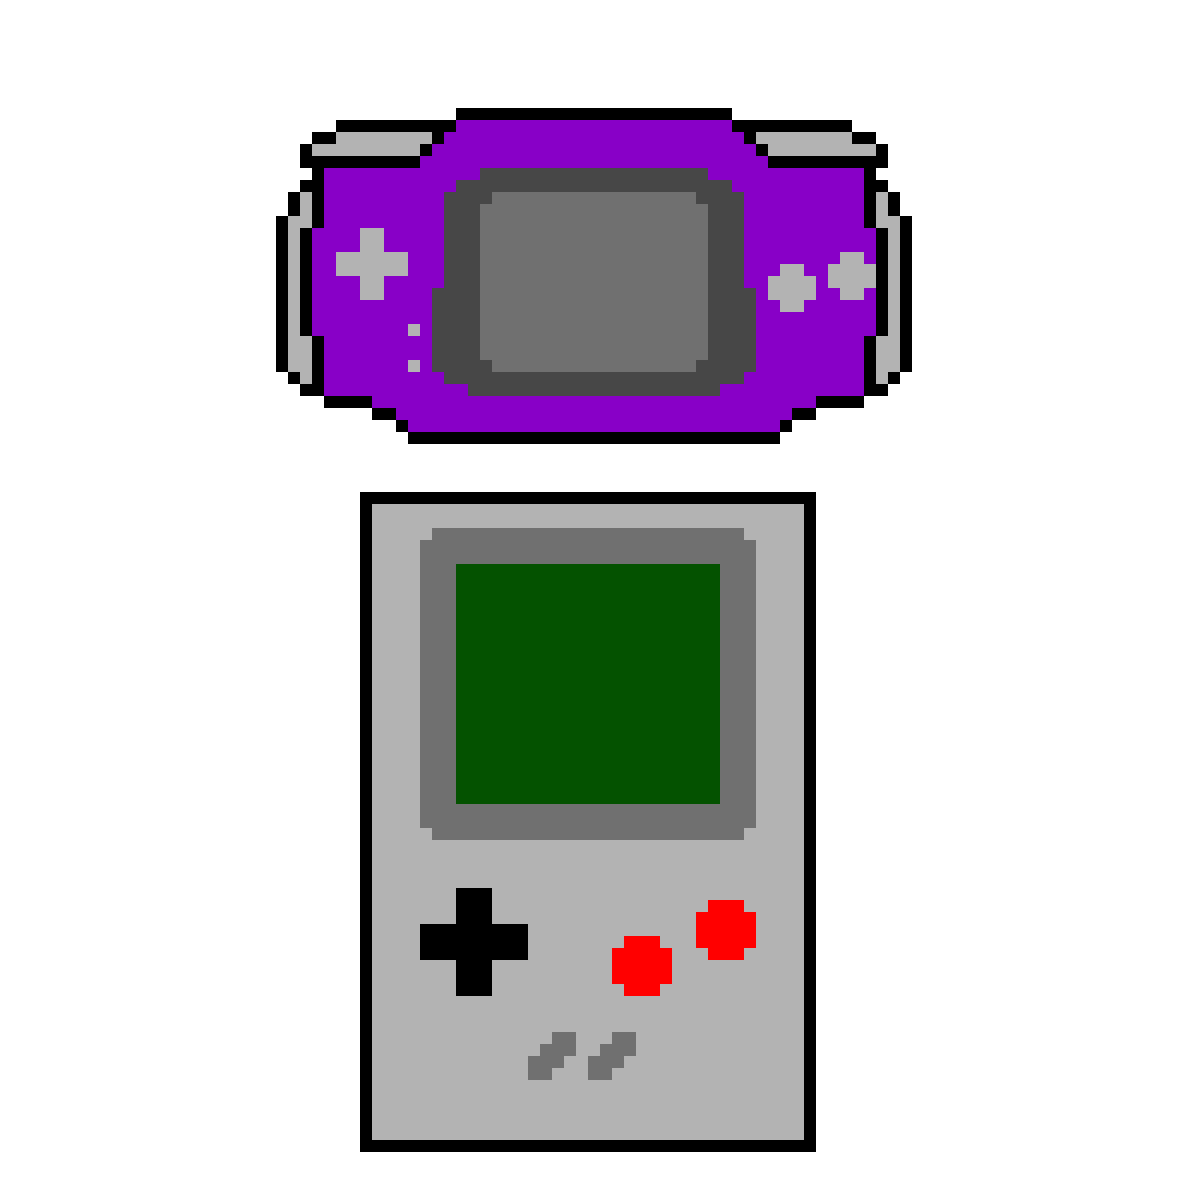 Gameboy drawing black and white